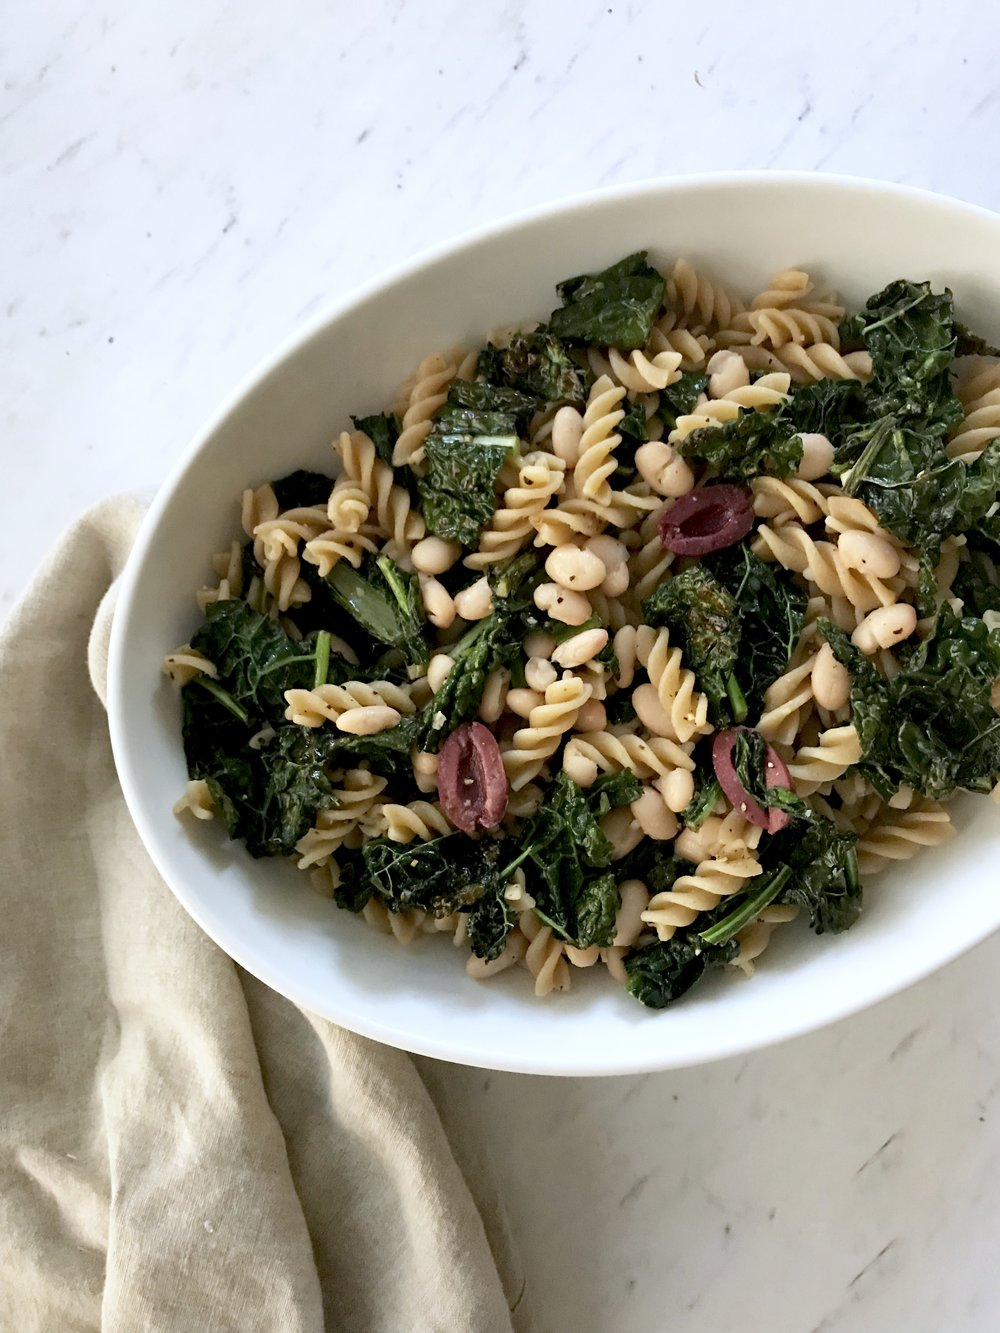 Lemon Kale Pasta (Vegan)